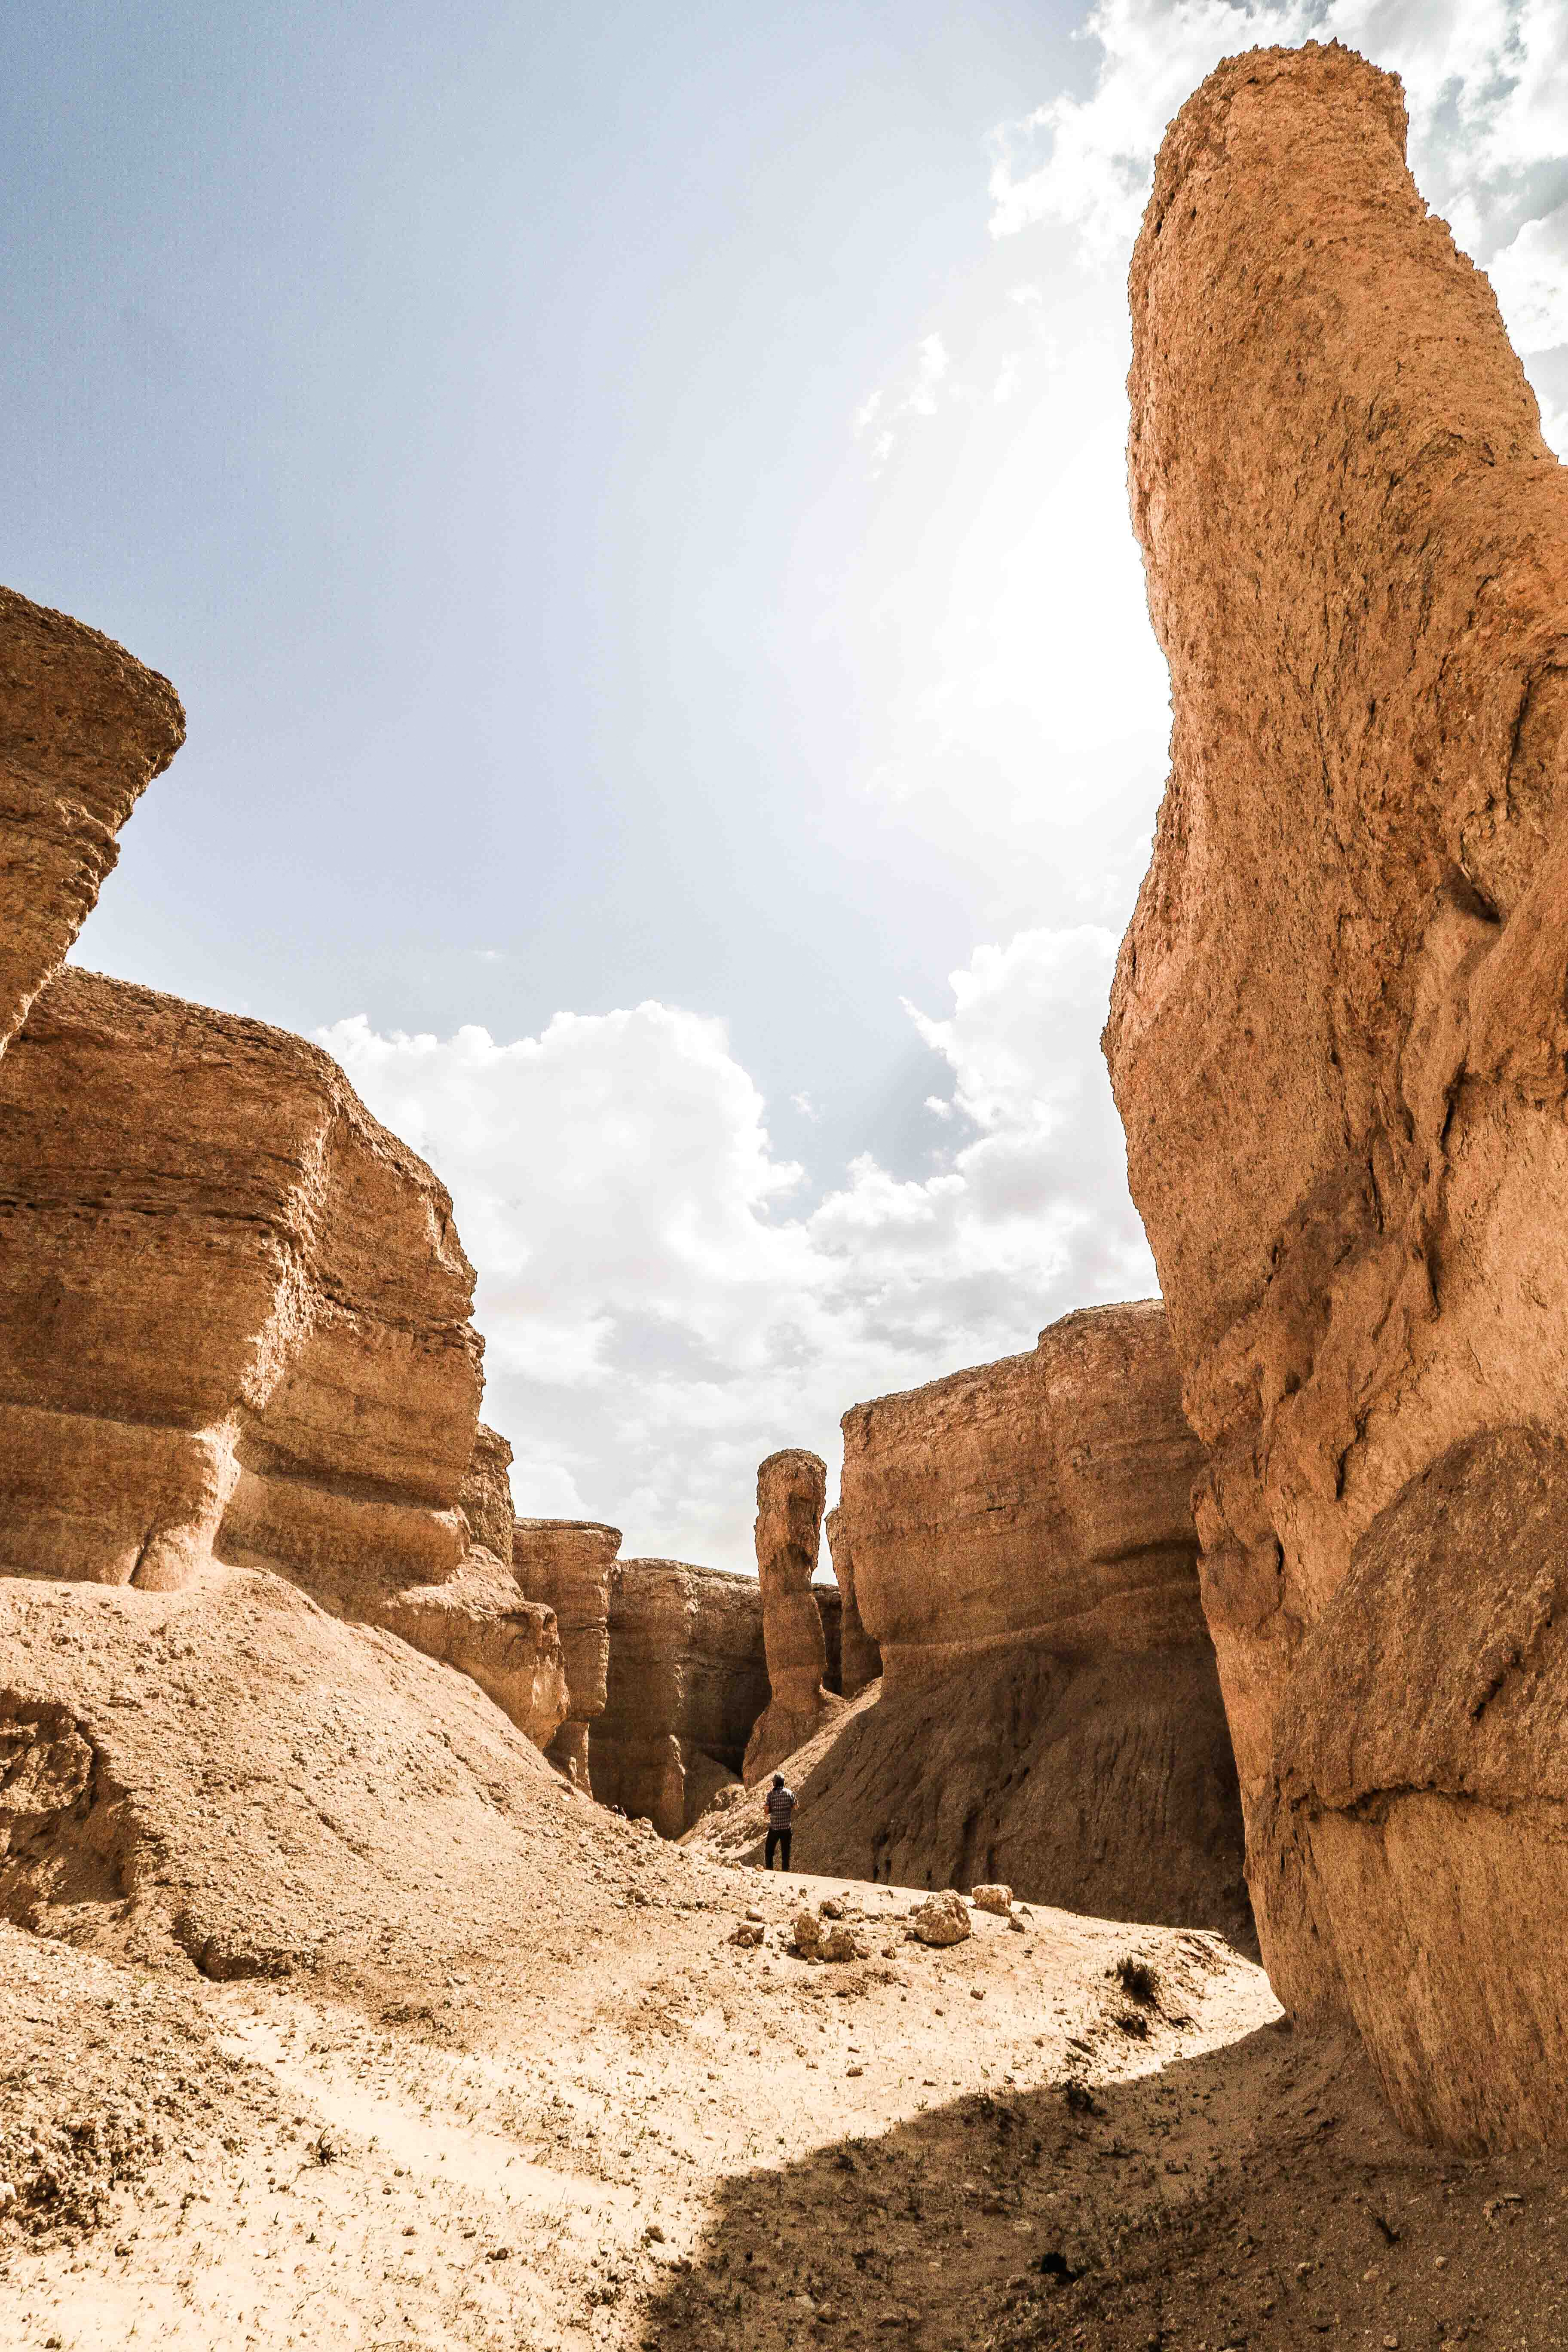 Canyon in Al-Ahsa (photo: Florent Egal)